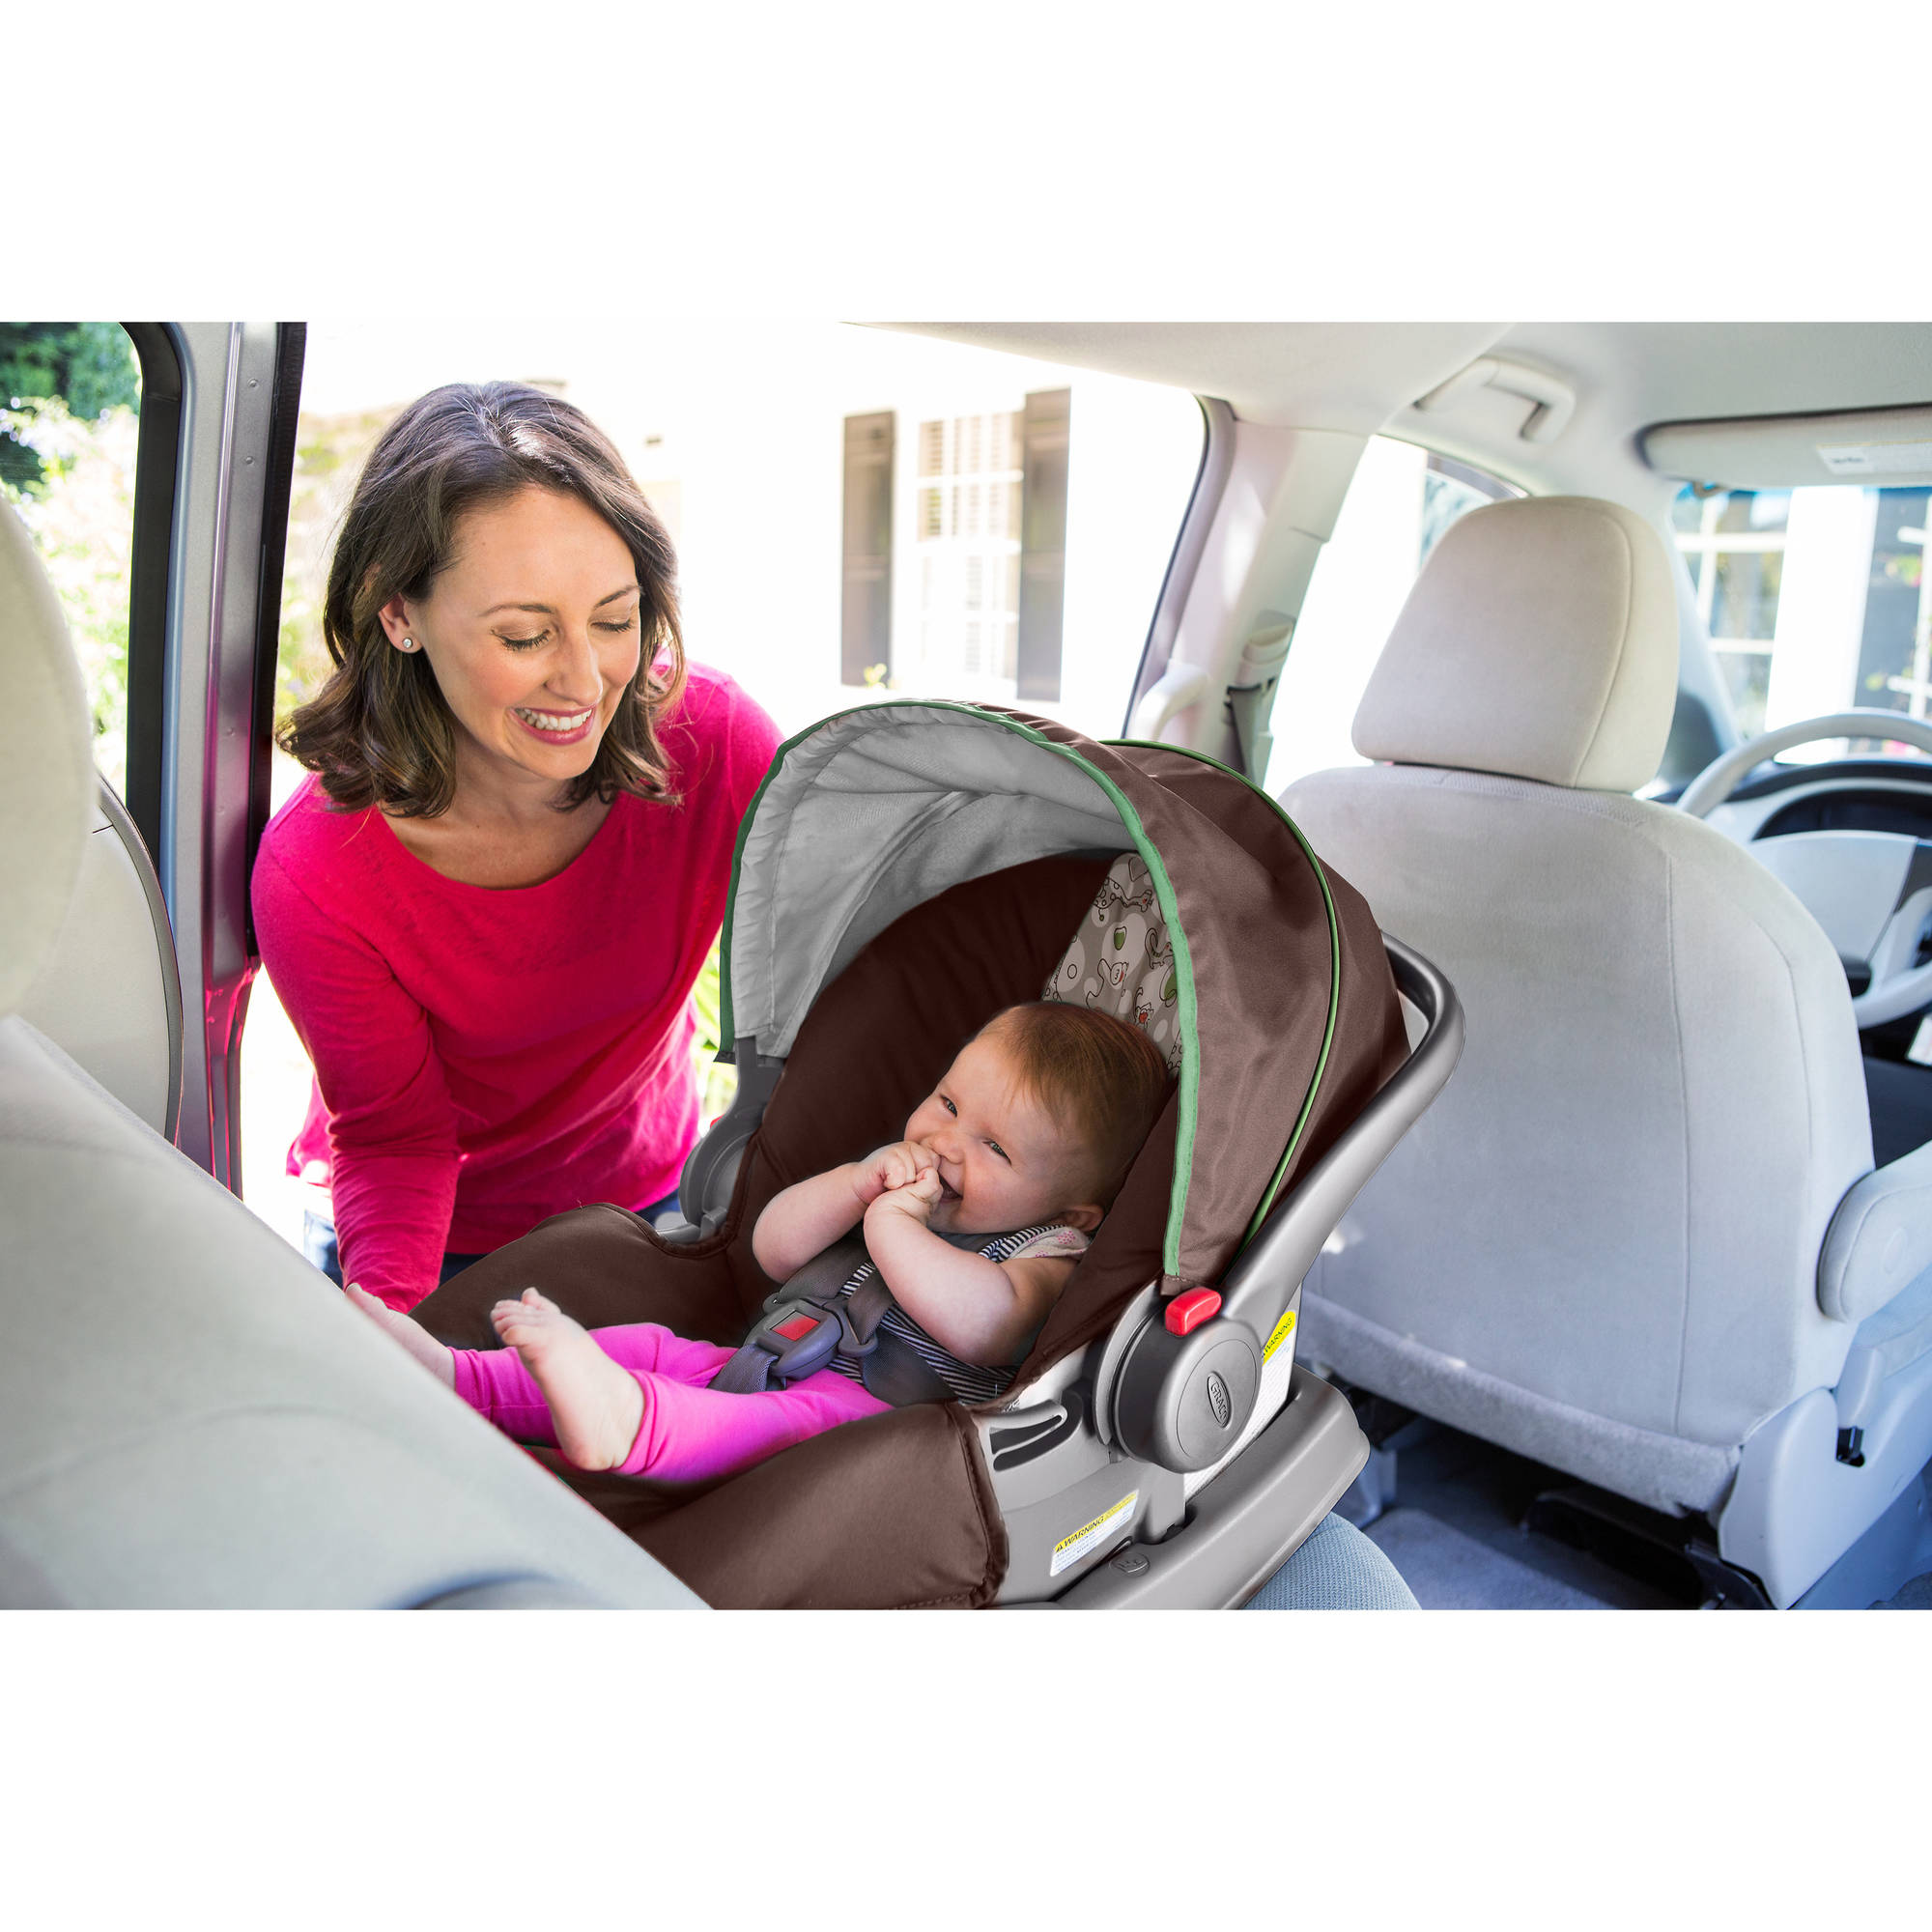 O'Rielly Chevrolet to Host Car Seat Safety Event - Arizona ...